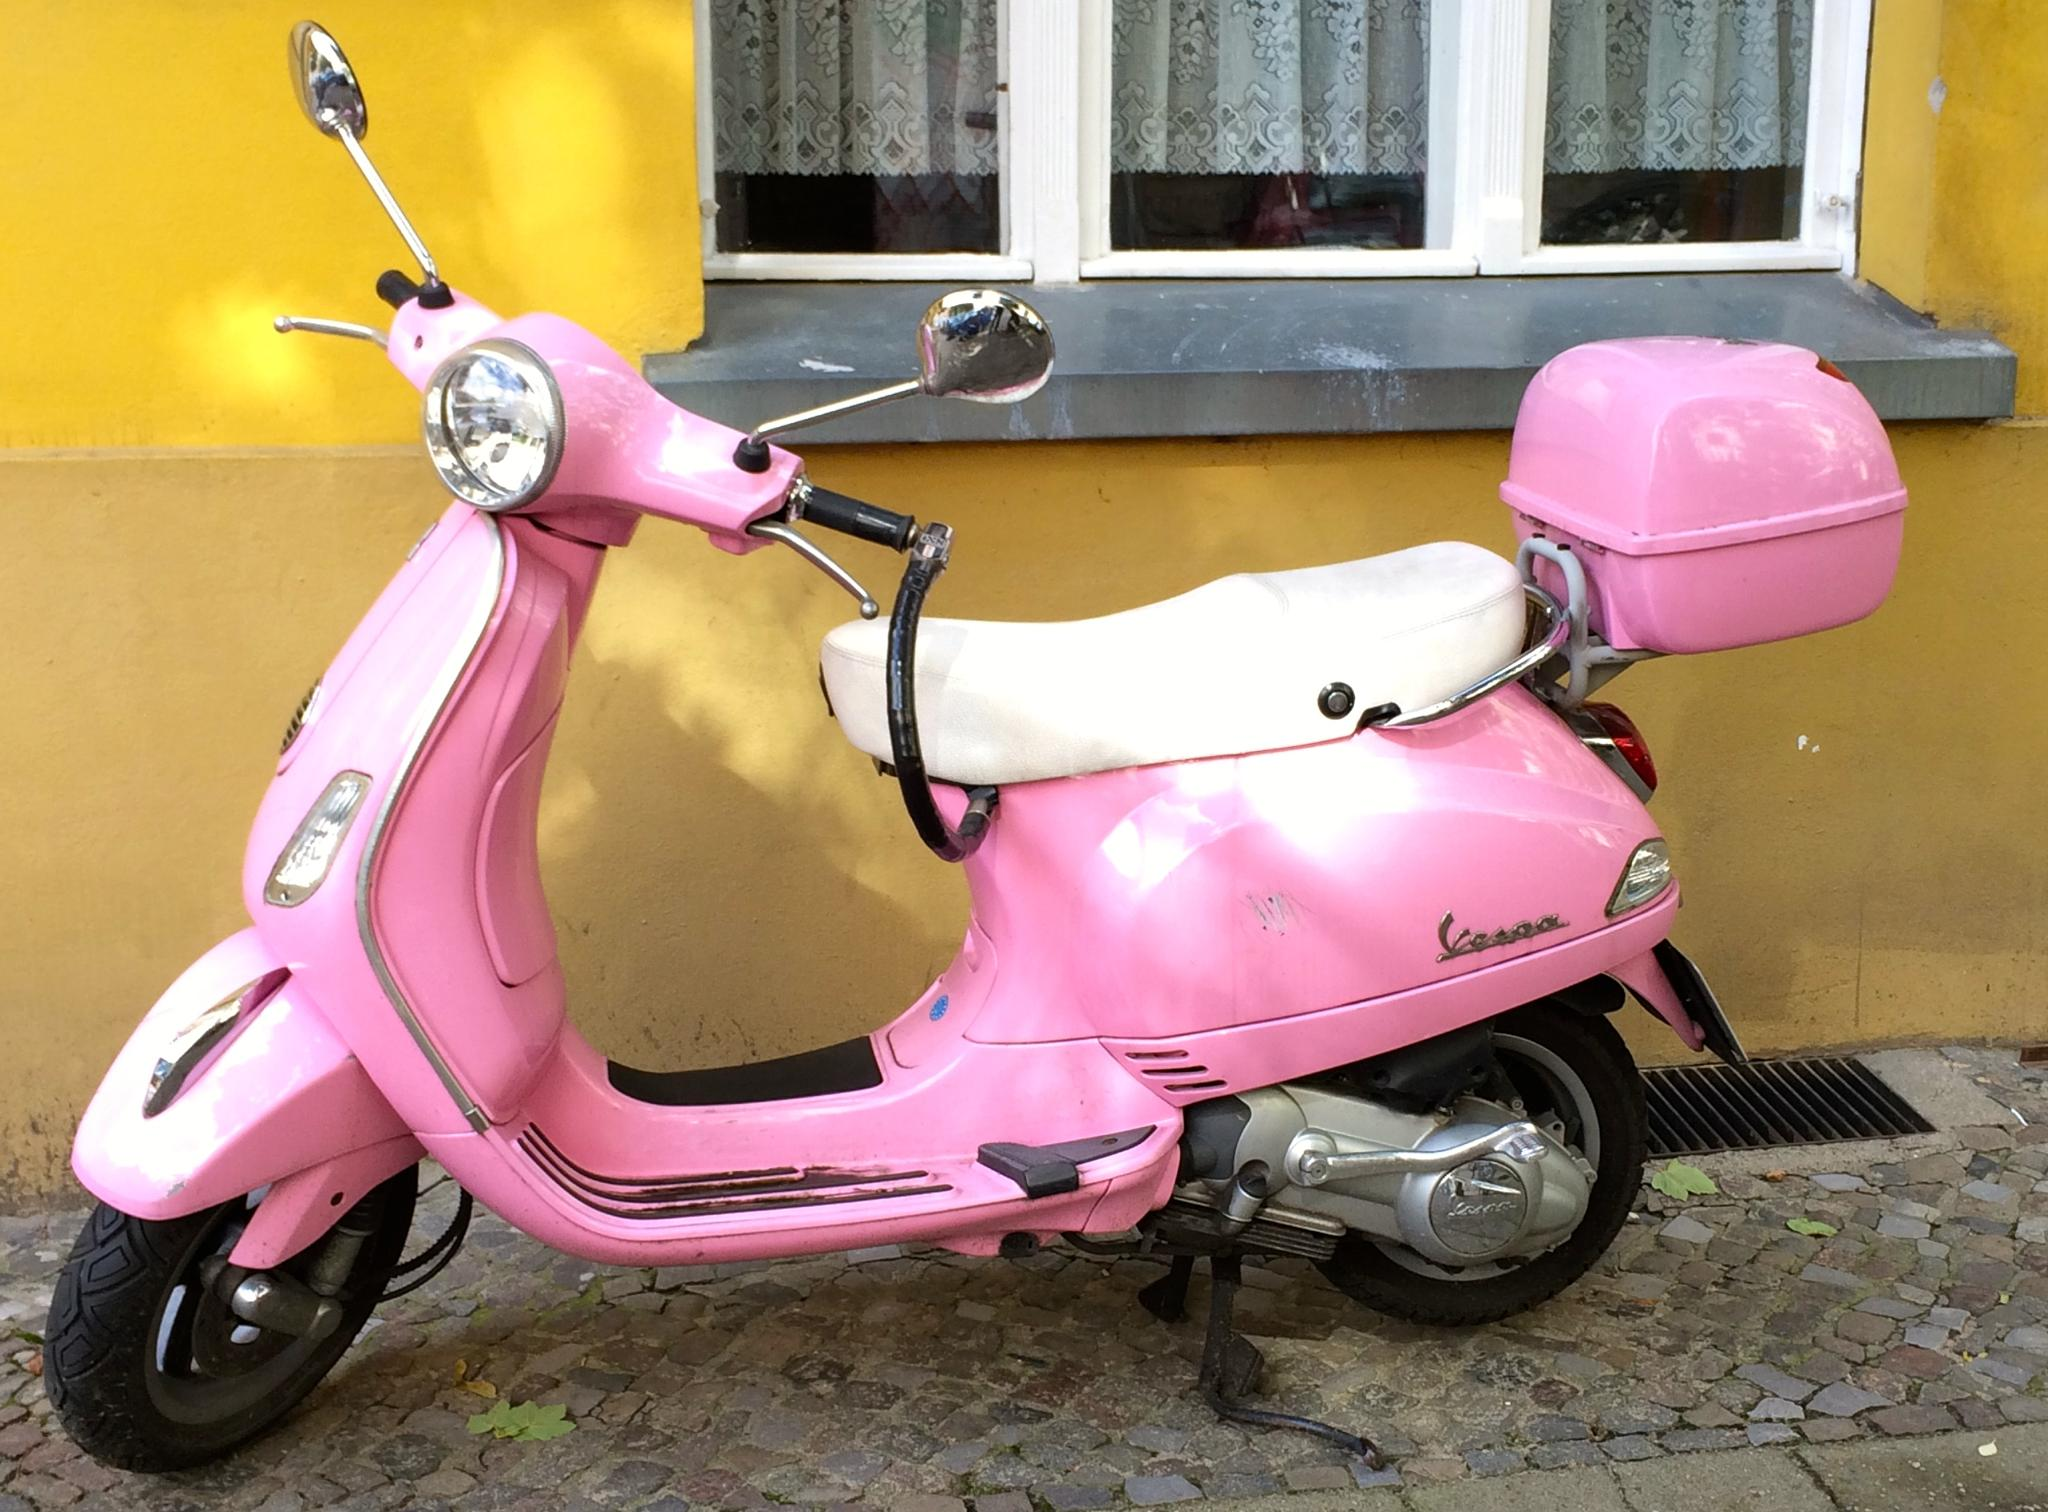 pink vespa in front of yellow house by m.etemadieh